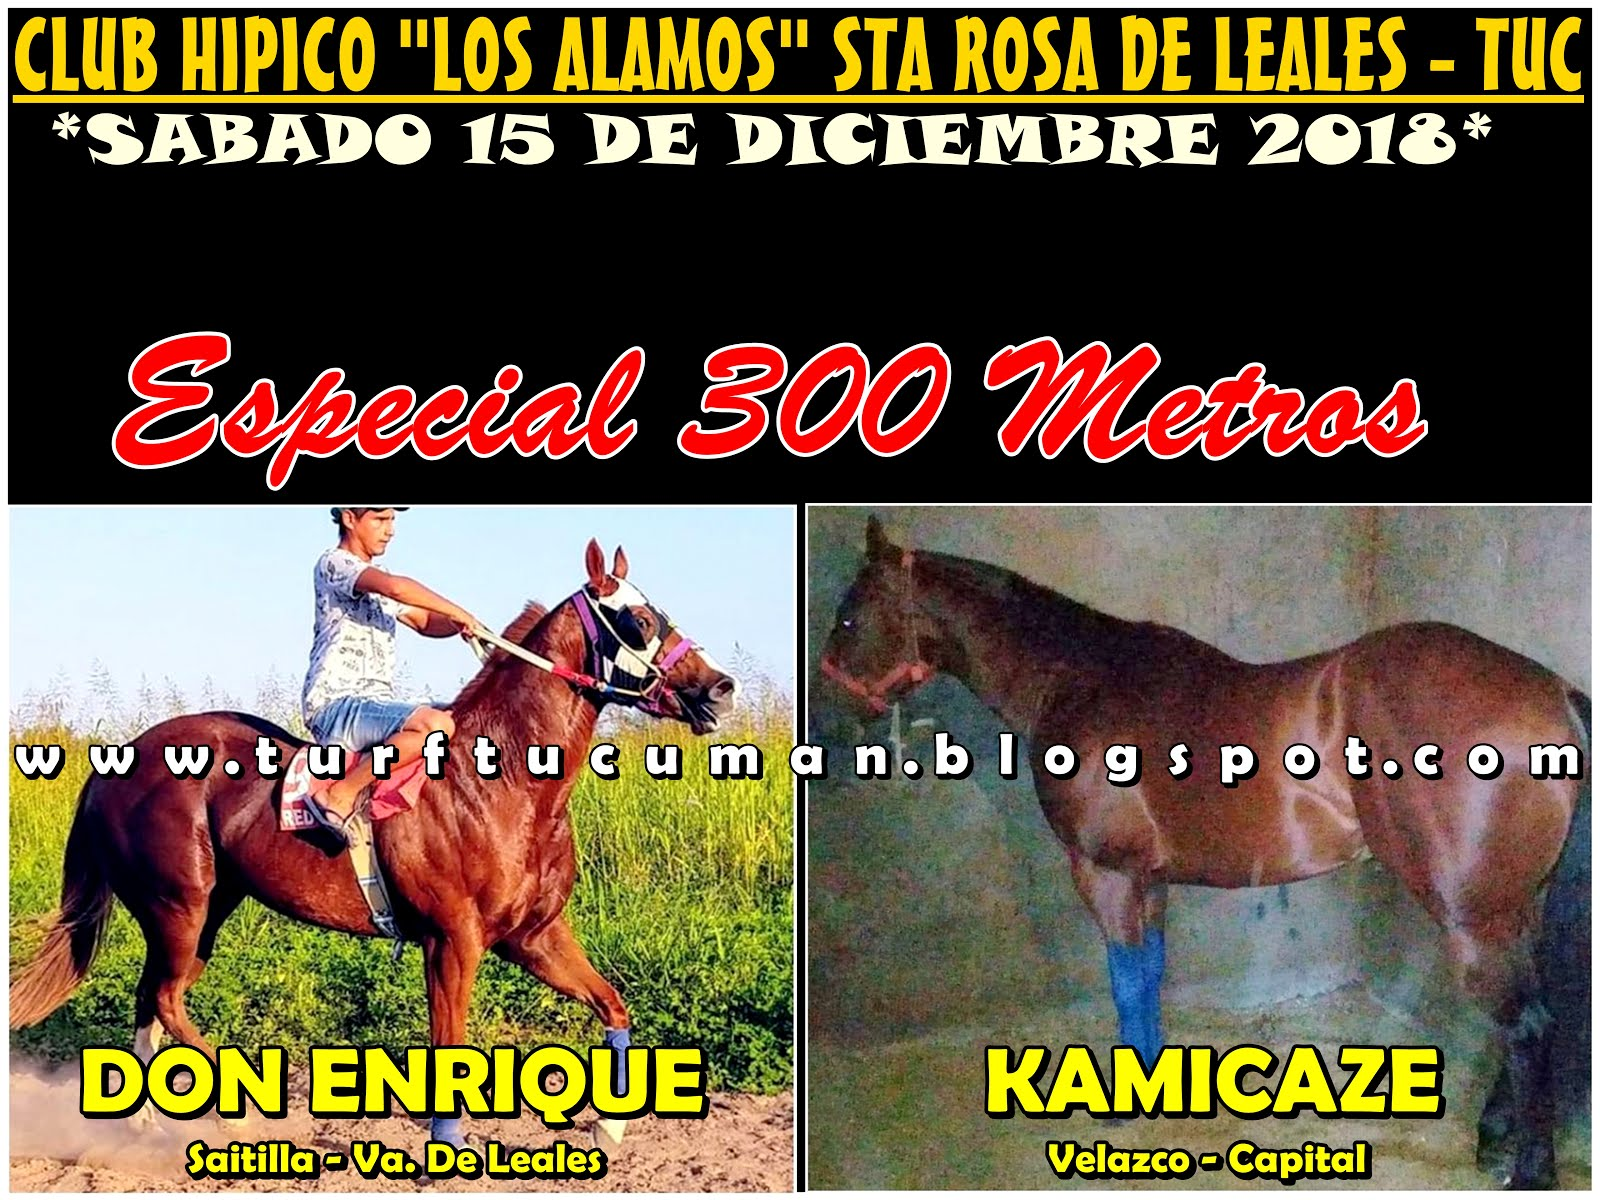 ENRIQUE VS KAMICAZE